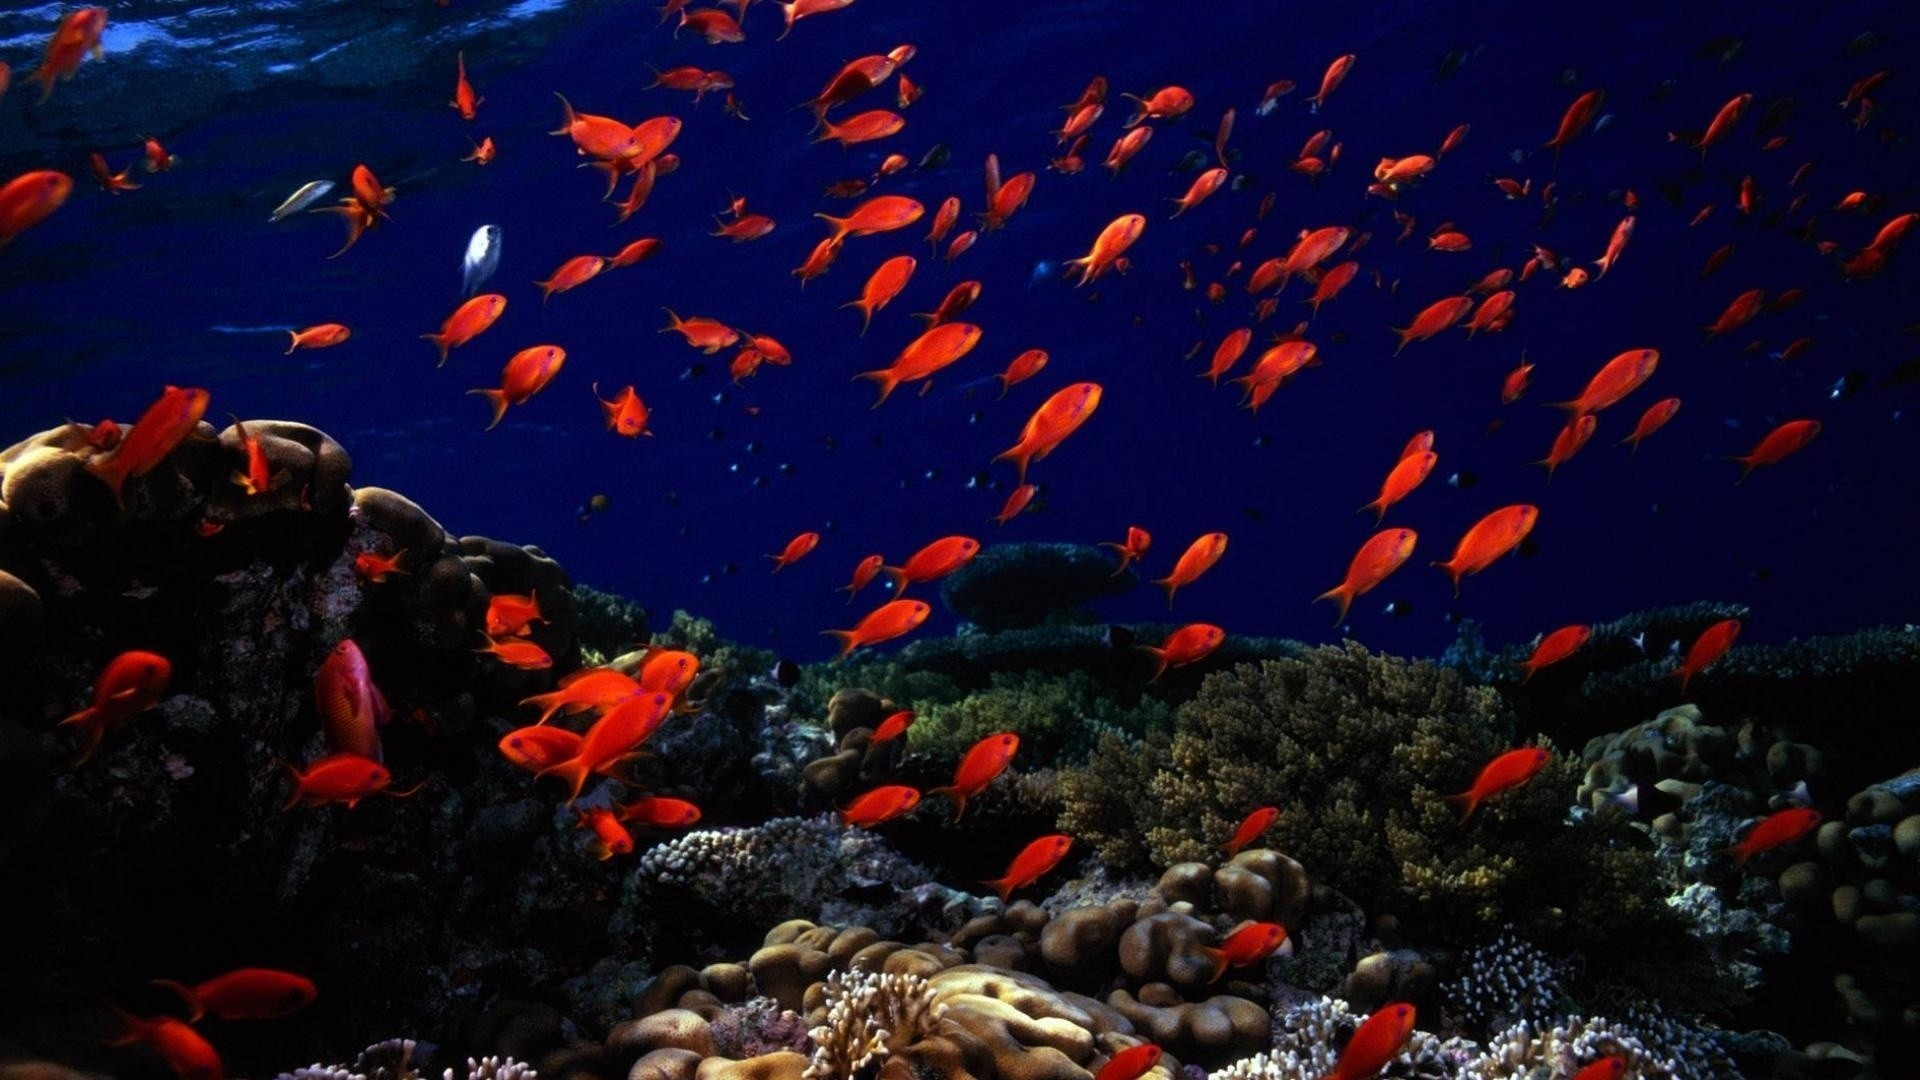 underwater hd wallpapers 1920x1080 (79+ images)